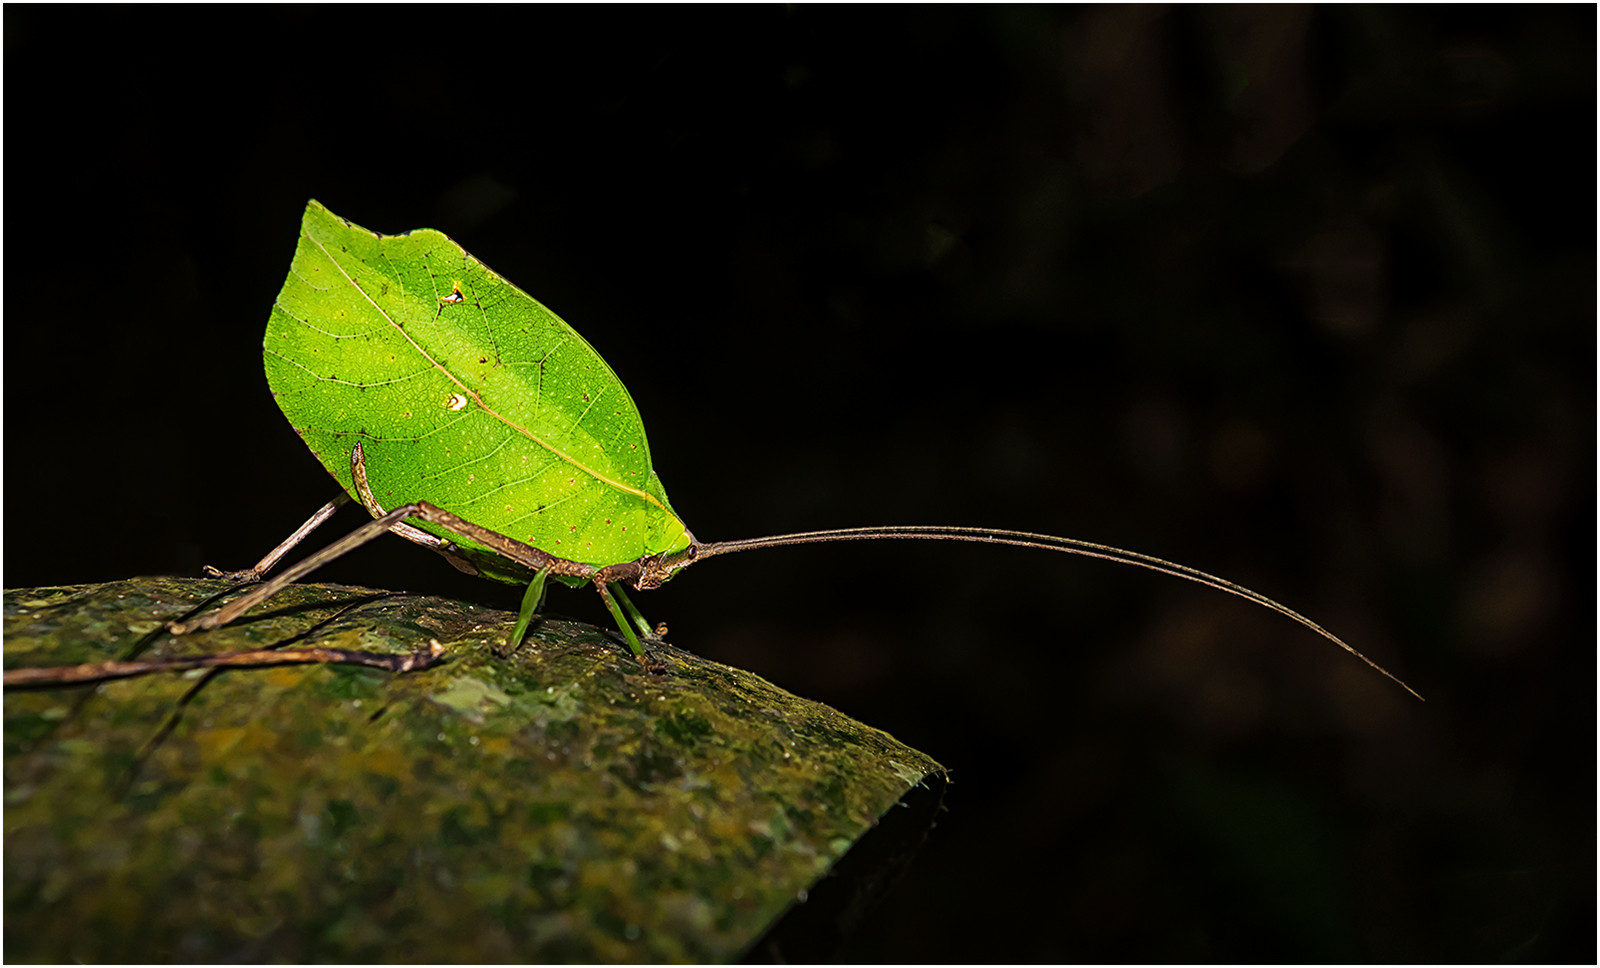 PDI - Leaf Mimic Insect by Brendan Hinds (13 marks)